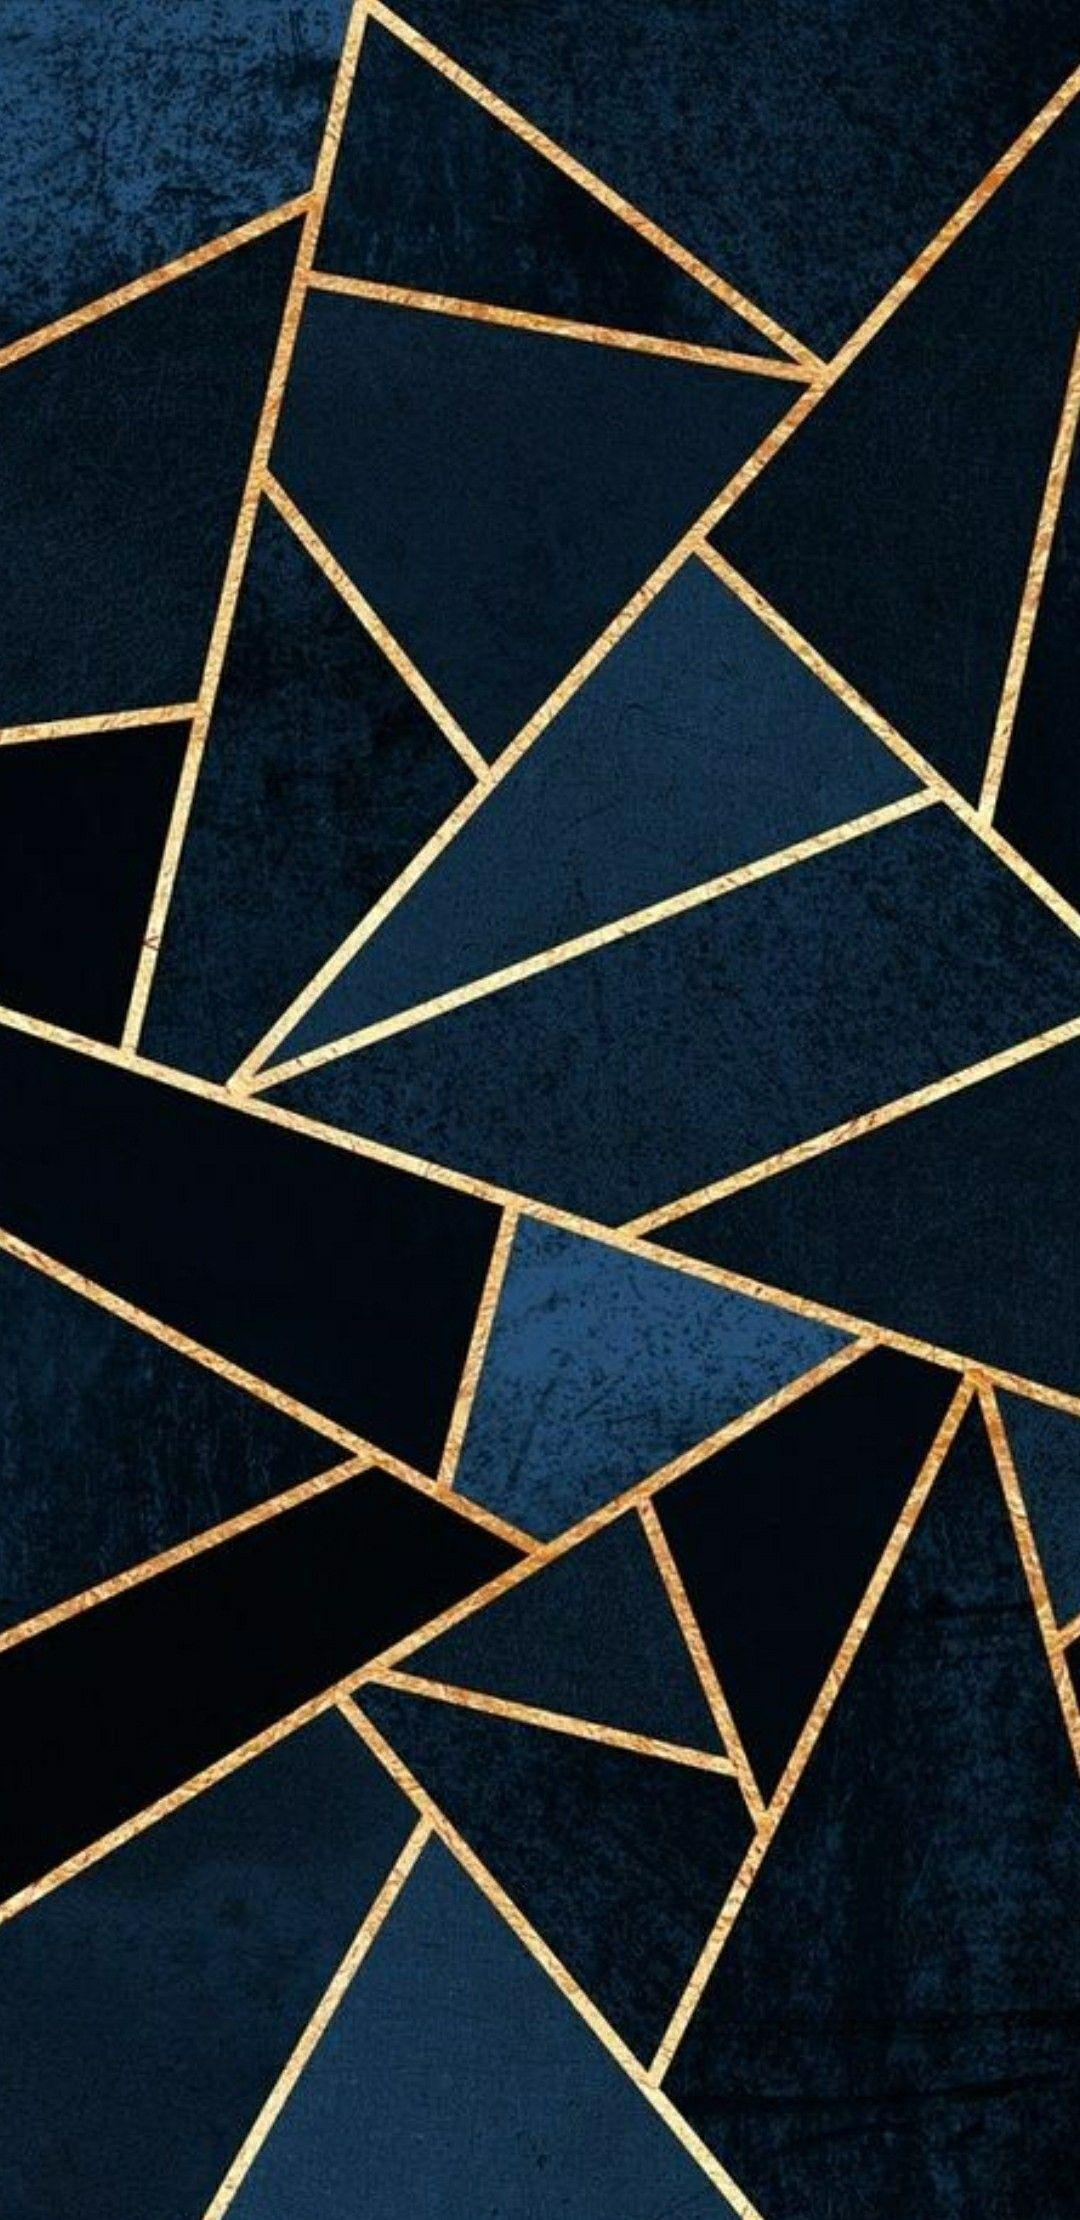 Blue And Gold Wallpapers Wallpaper Cave